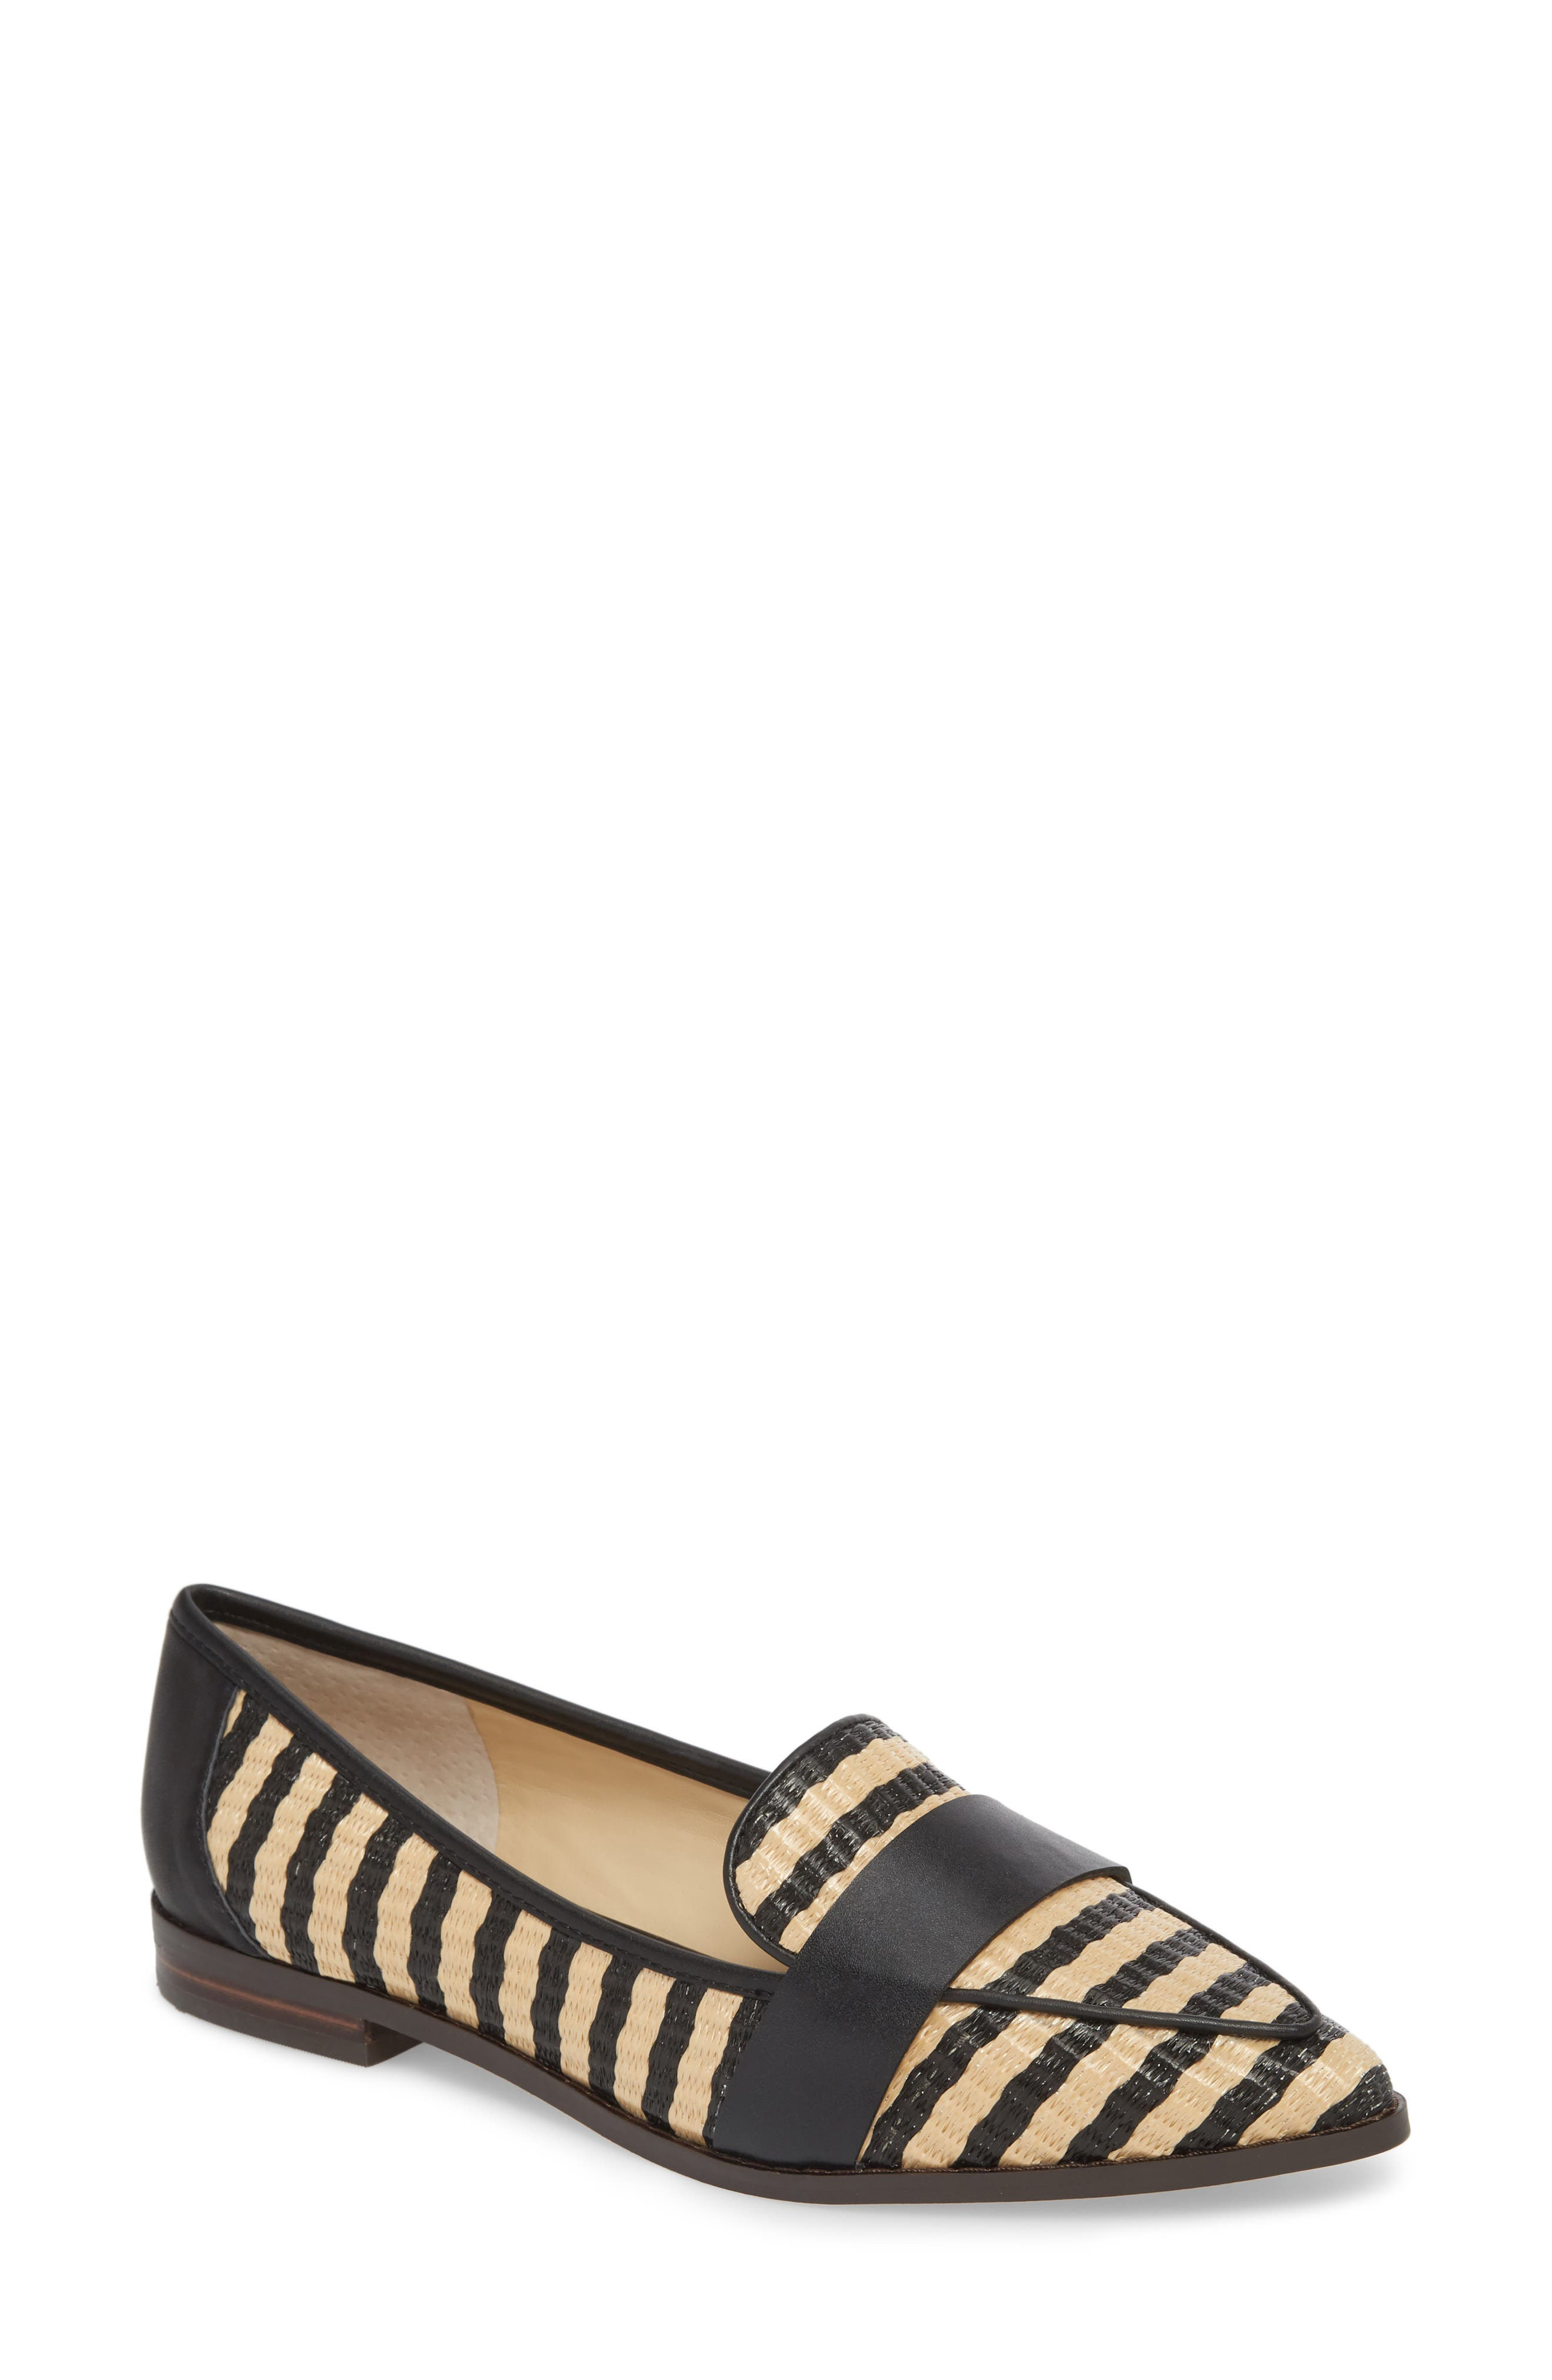 SOLE SOCIETY Edie Loafer, Main, color, NATURAL/ BLACK